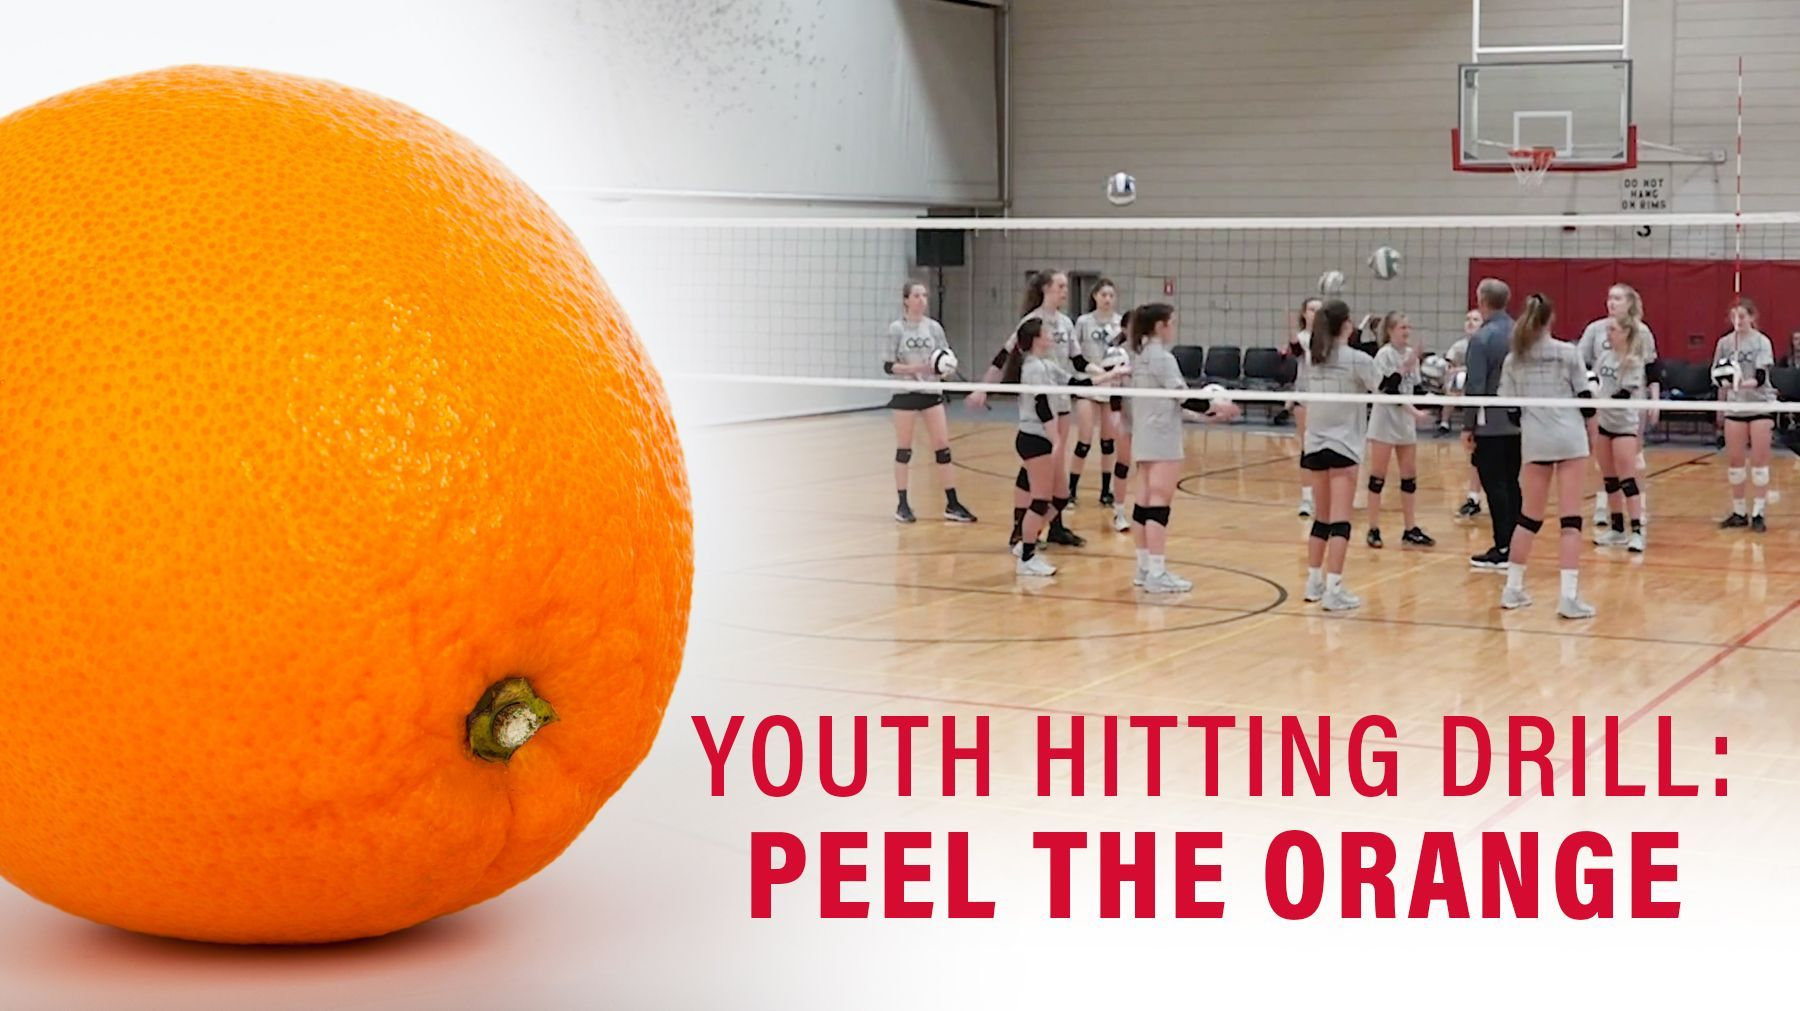 Youth Hitting Drill Peel The Orange Coaching Volleyball Drill Youth Volleyball